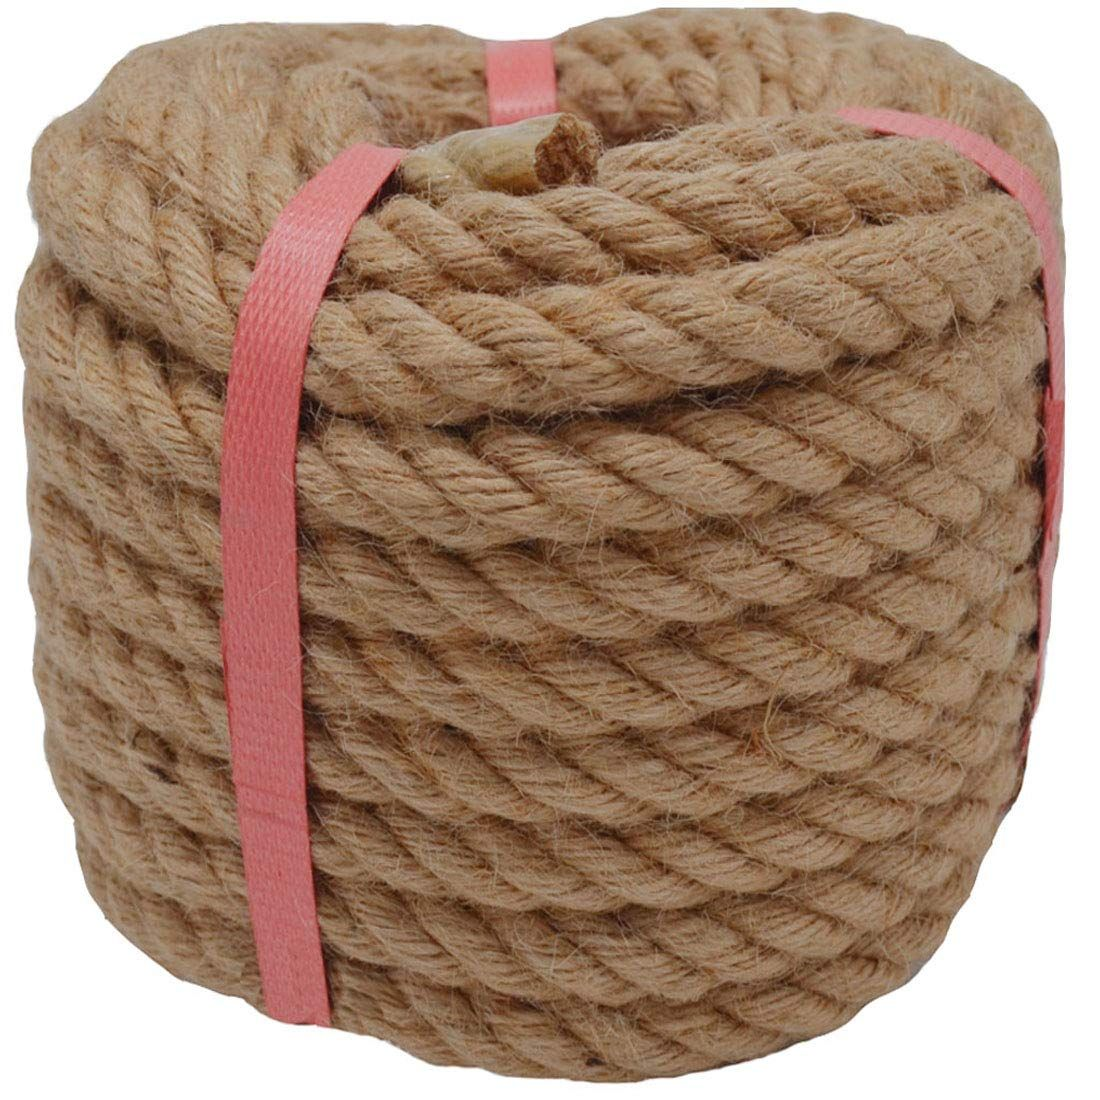 Zhitao Natural Jute Rope 50 Ft 1 2 Inch Twisted Manila Hemp Rope Thick Heavy Duty Outdoor Cordage For Craft Dock Decorative Manila Rope Jute New Crafts